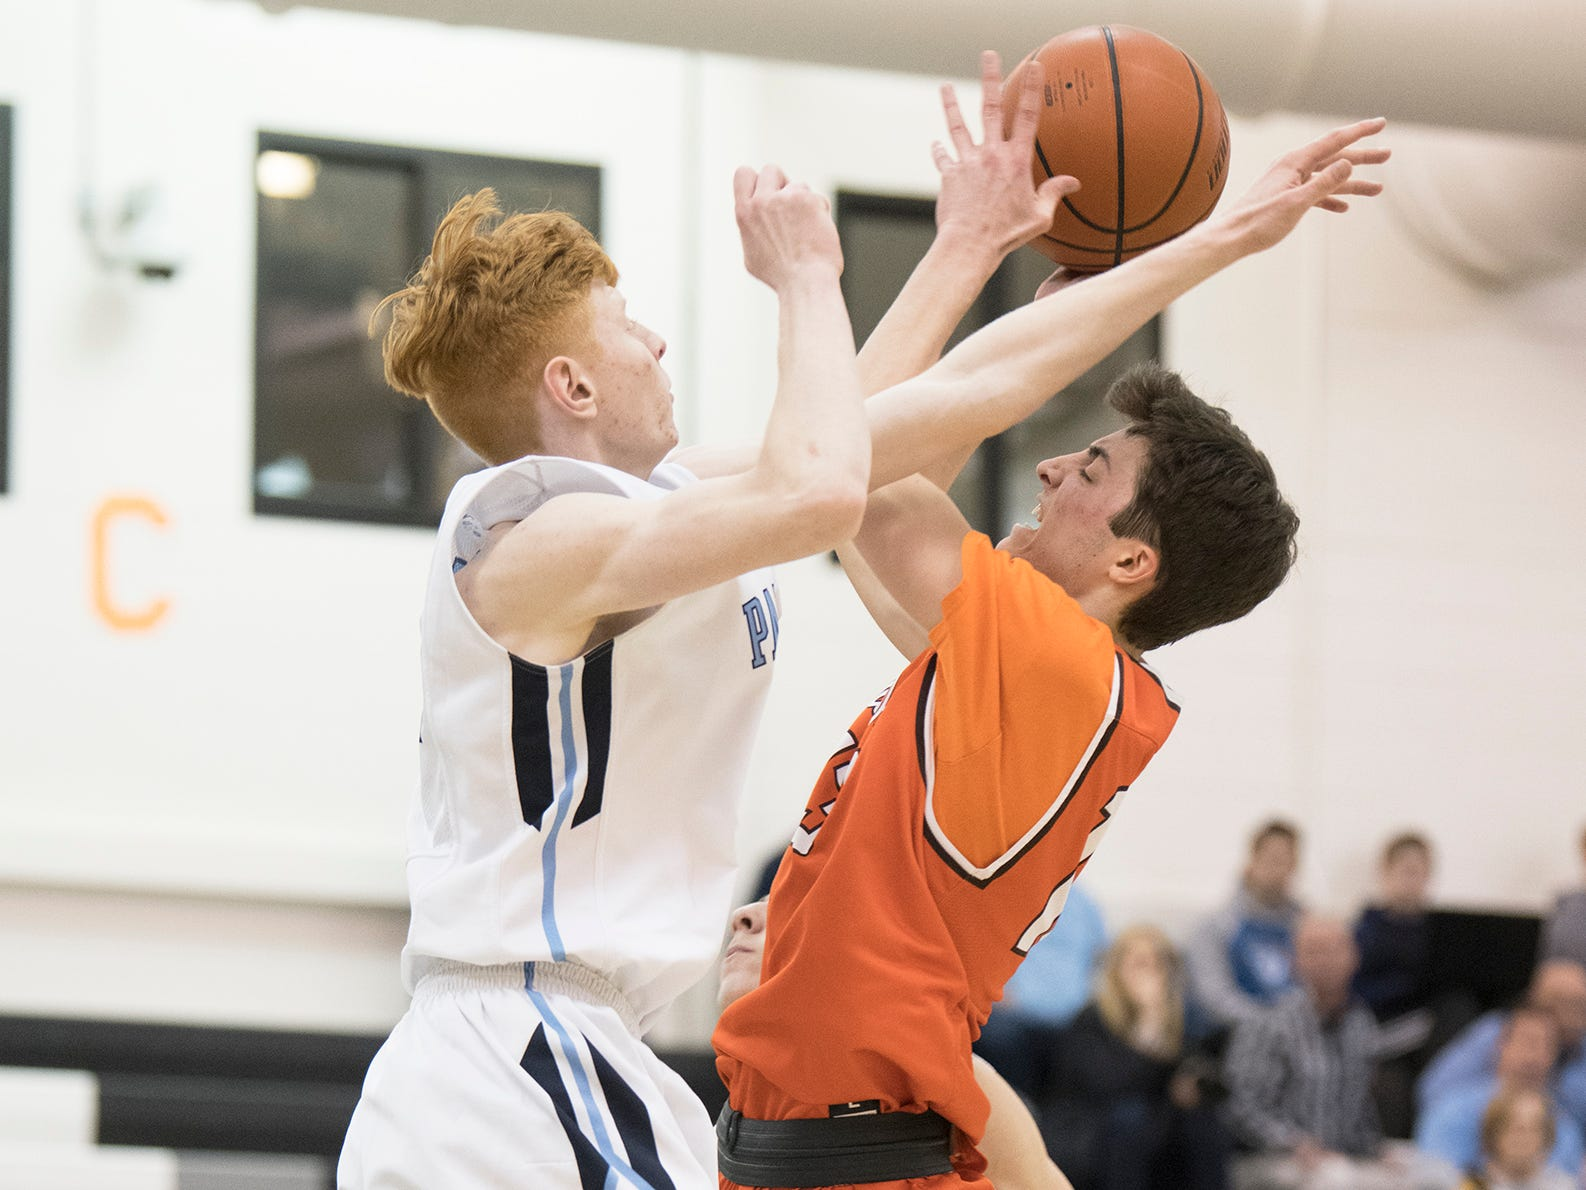 Cherokee faced Freehold in the Group 4 state semifinal boys basketball playoff game played at Egg Harbor Township High School on Wednesday, March 6, 2019.    Freehold won the game, 44-42.